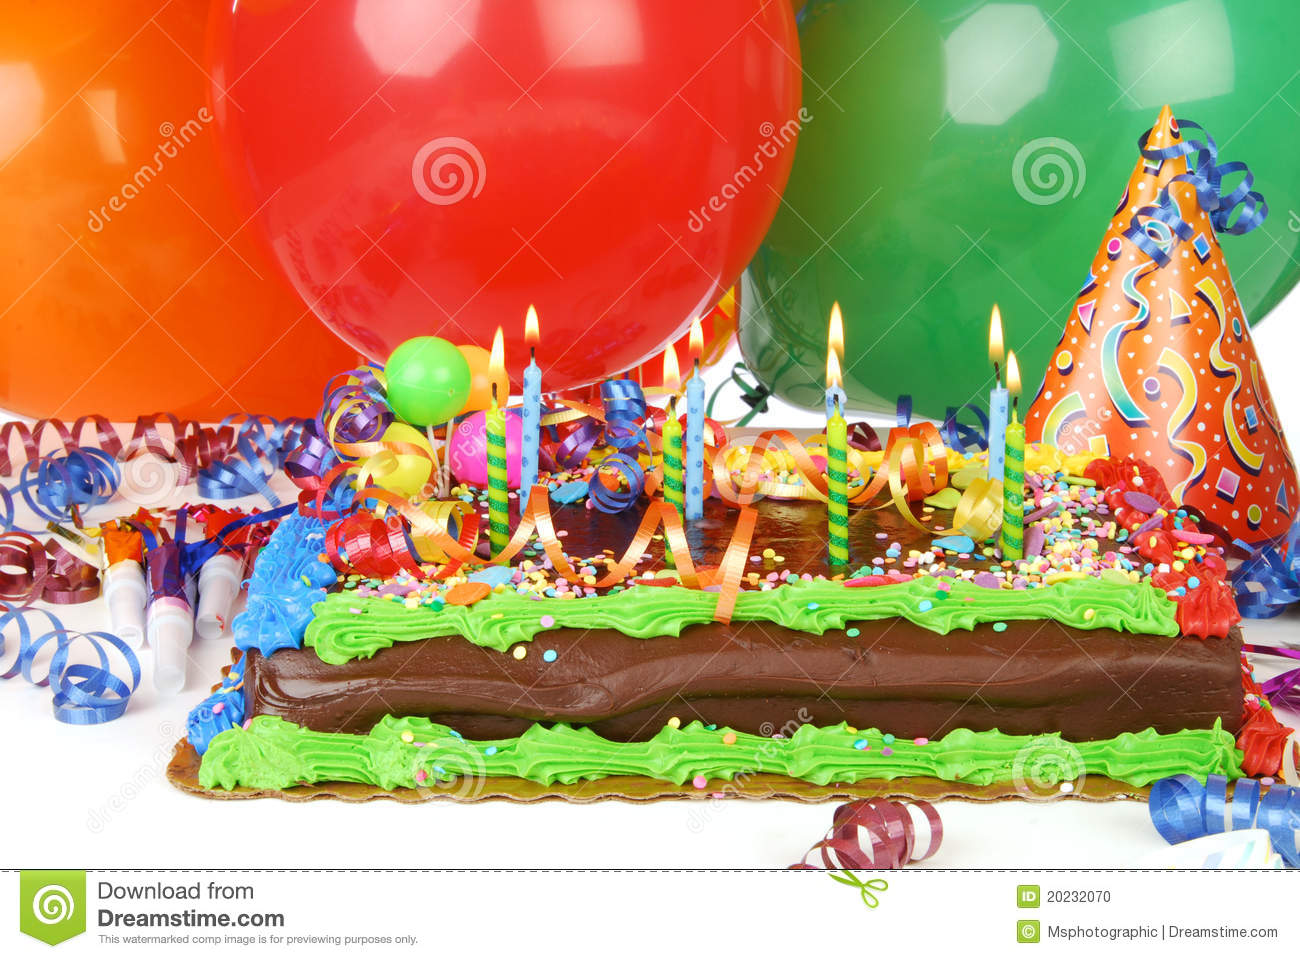 A Birthday Cake With Helium Balloons In The Background